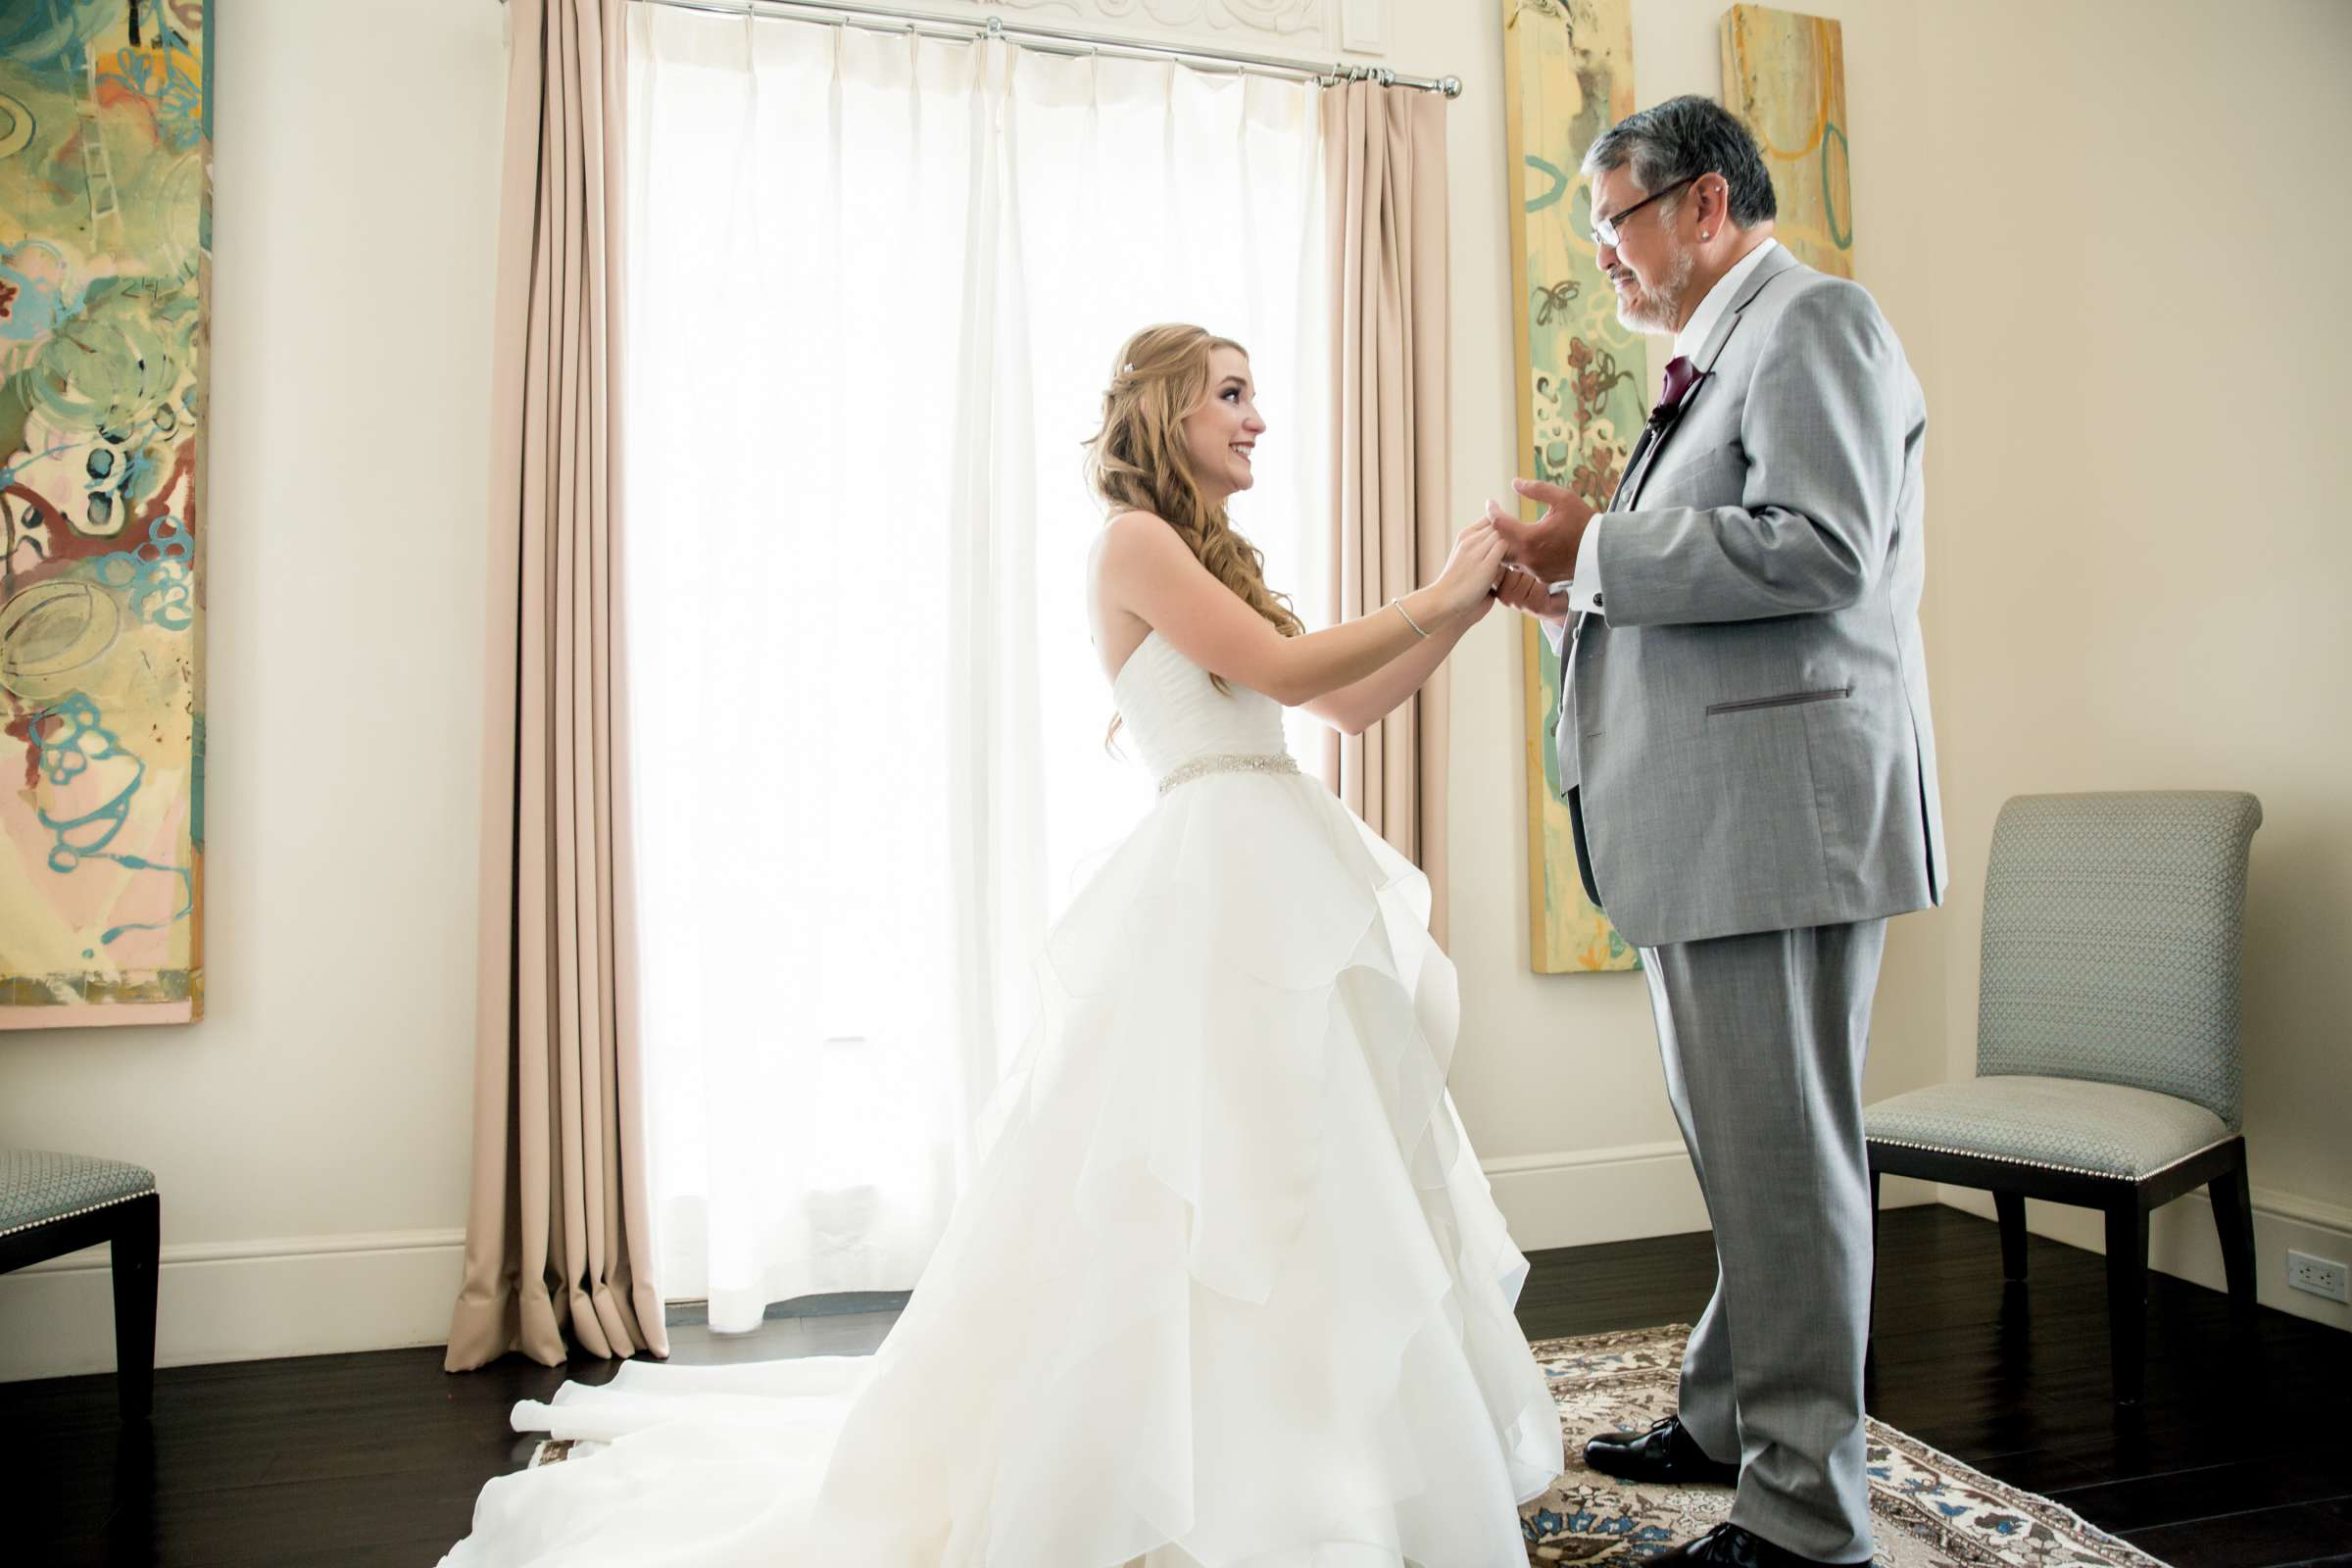 Father of the Bride at The Prado Wedding coordinated by Victoria Weddings & Events, Melissa and Andrew Wedding Photo #40 by True Photography